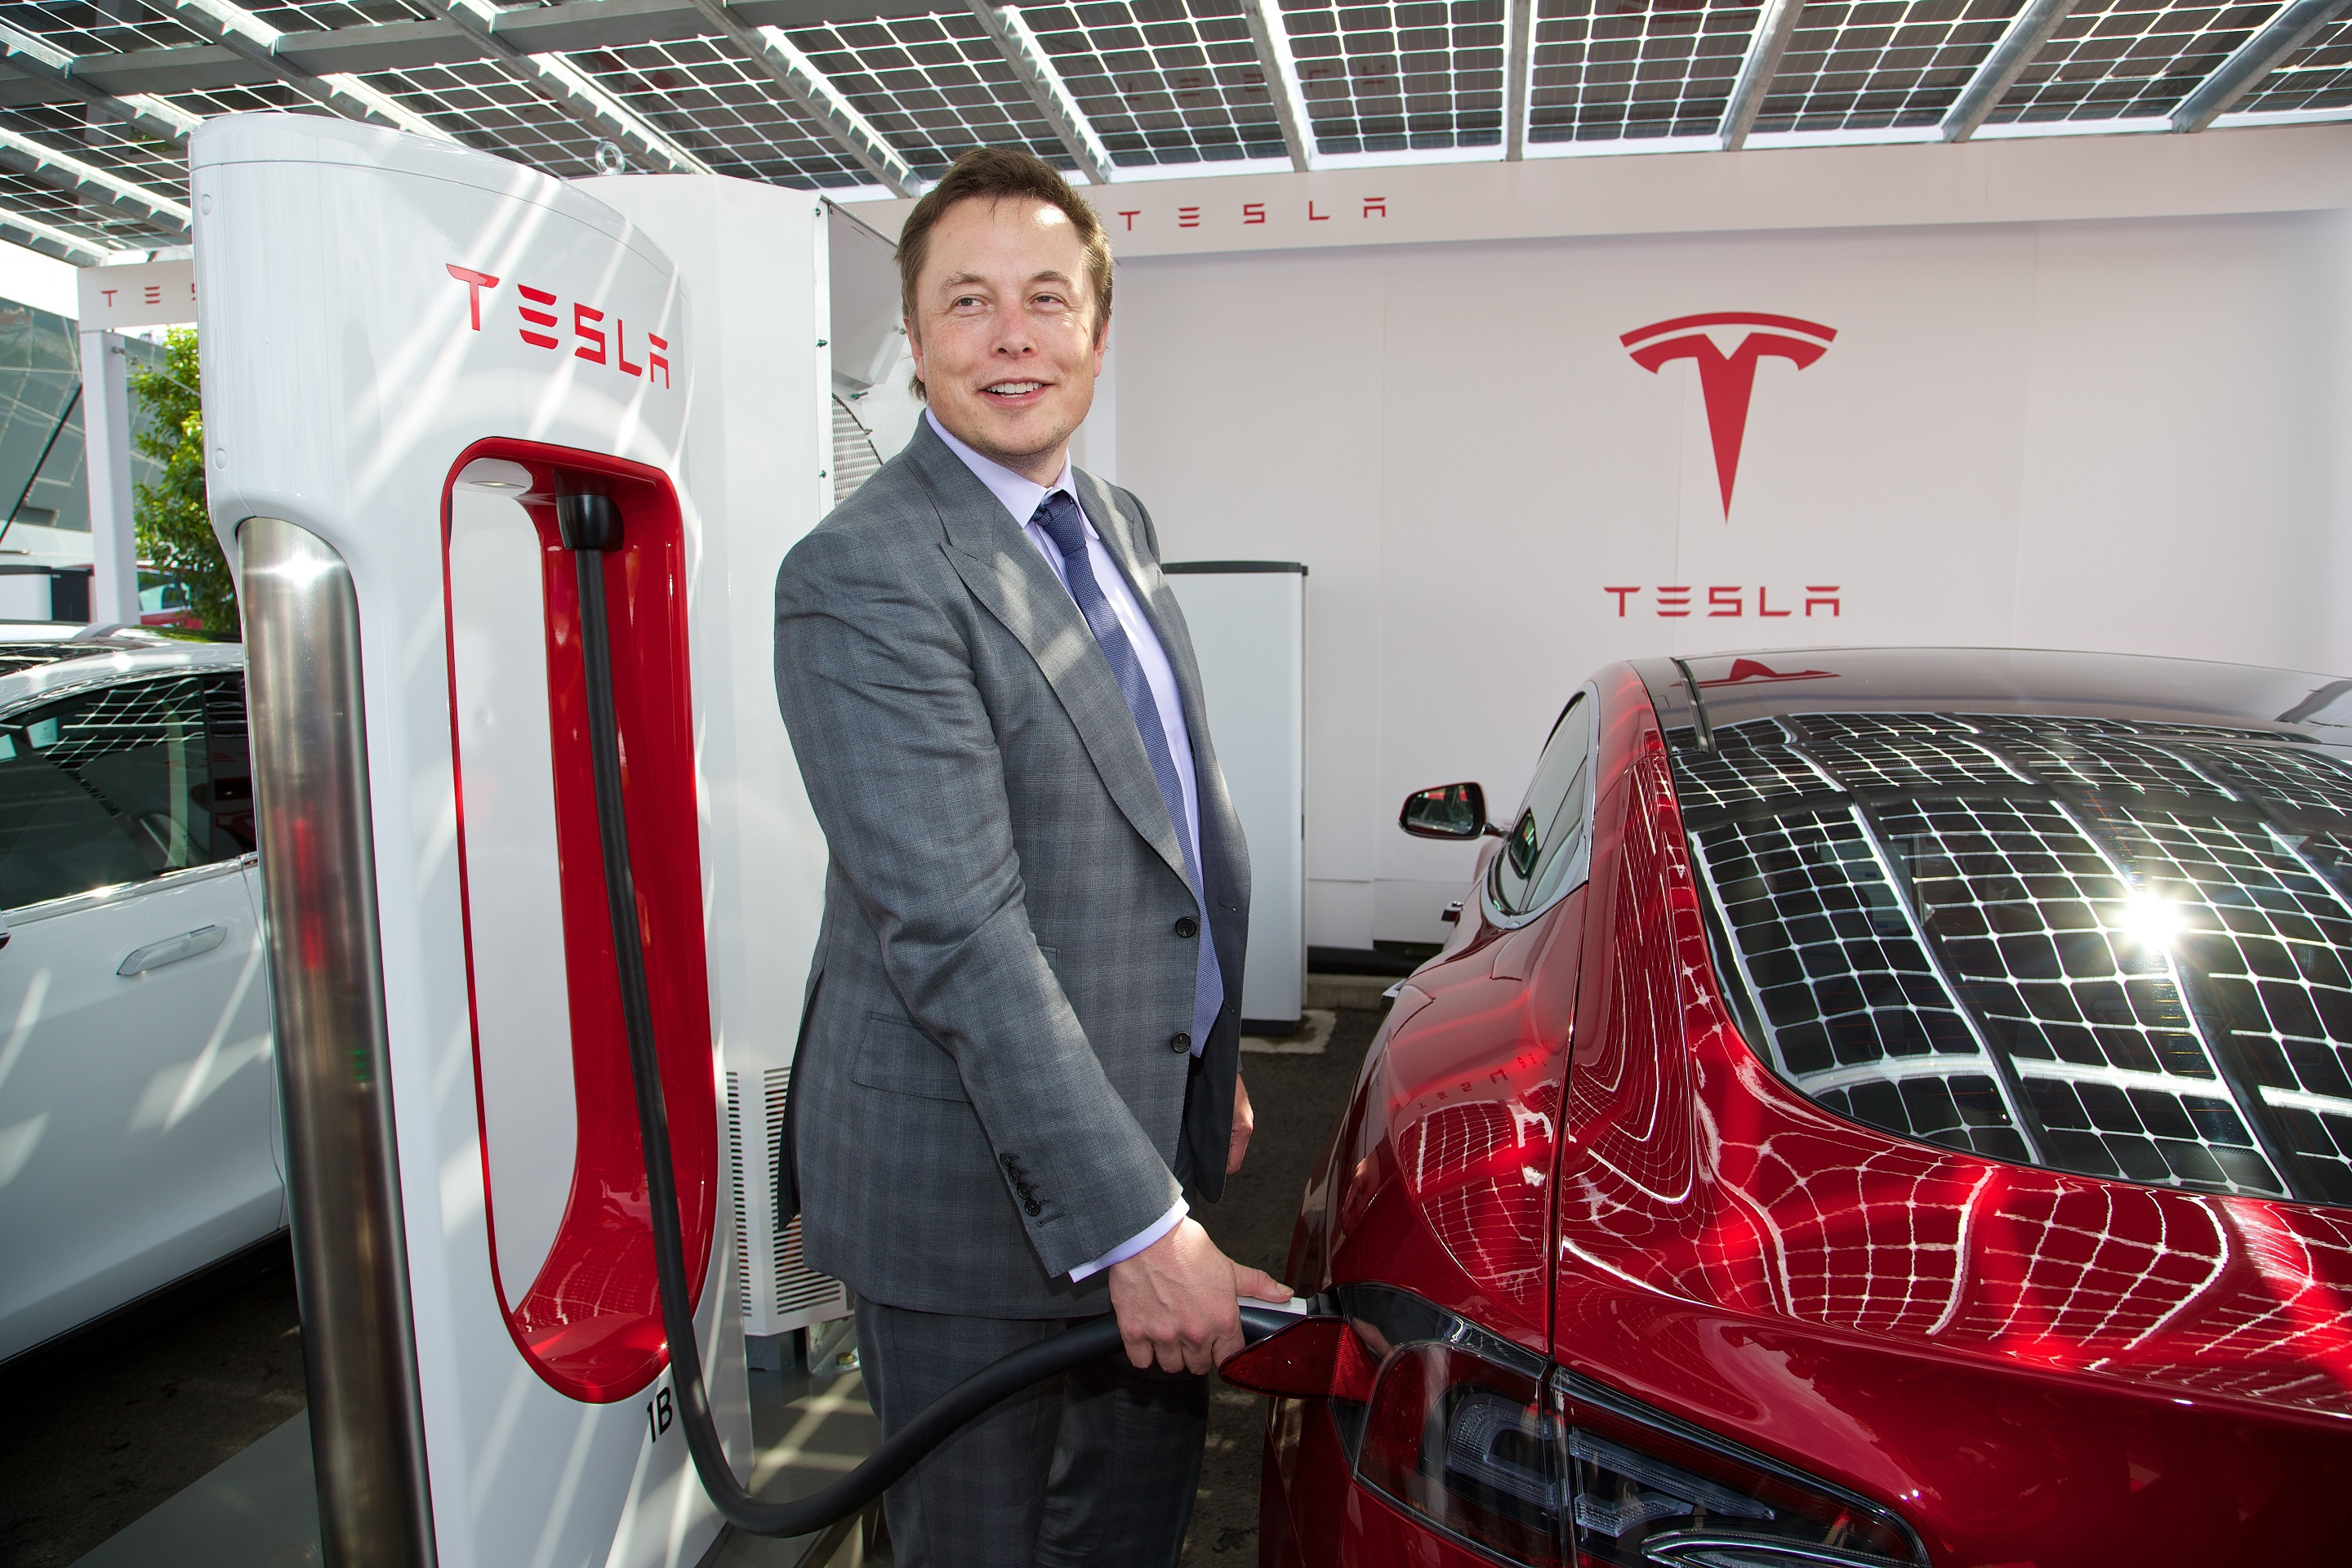 2880x1920 Elon Musk Wallpapers Images Photos Pictures Backgrounds